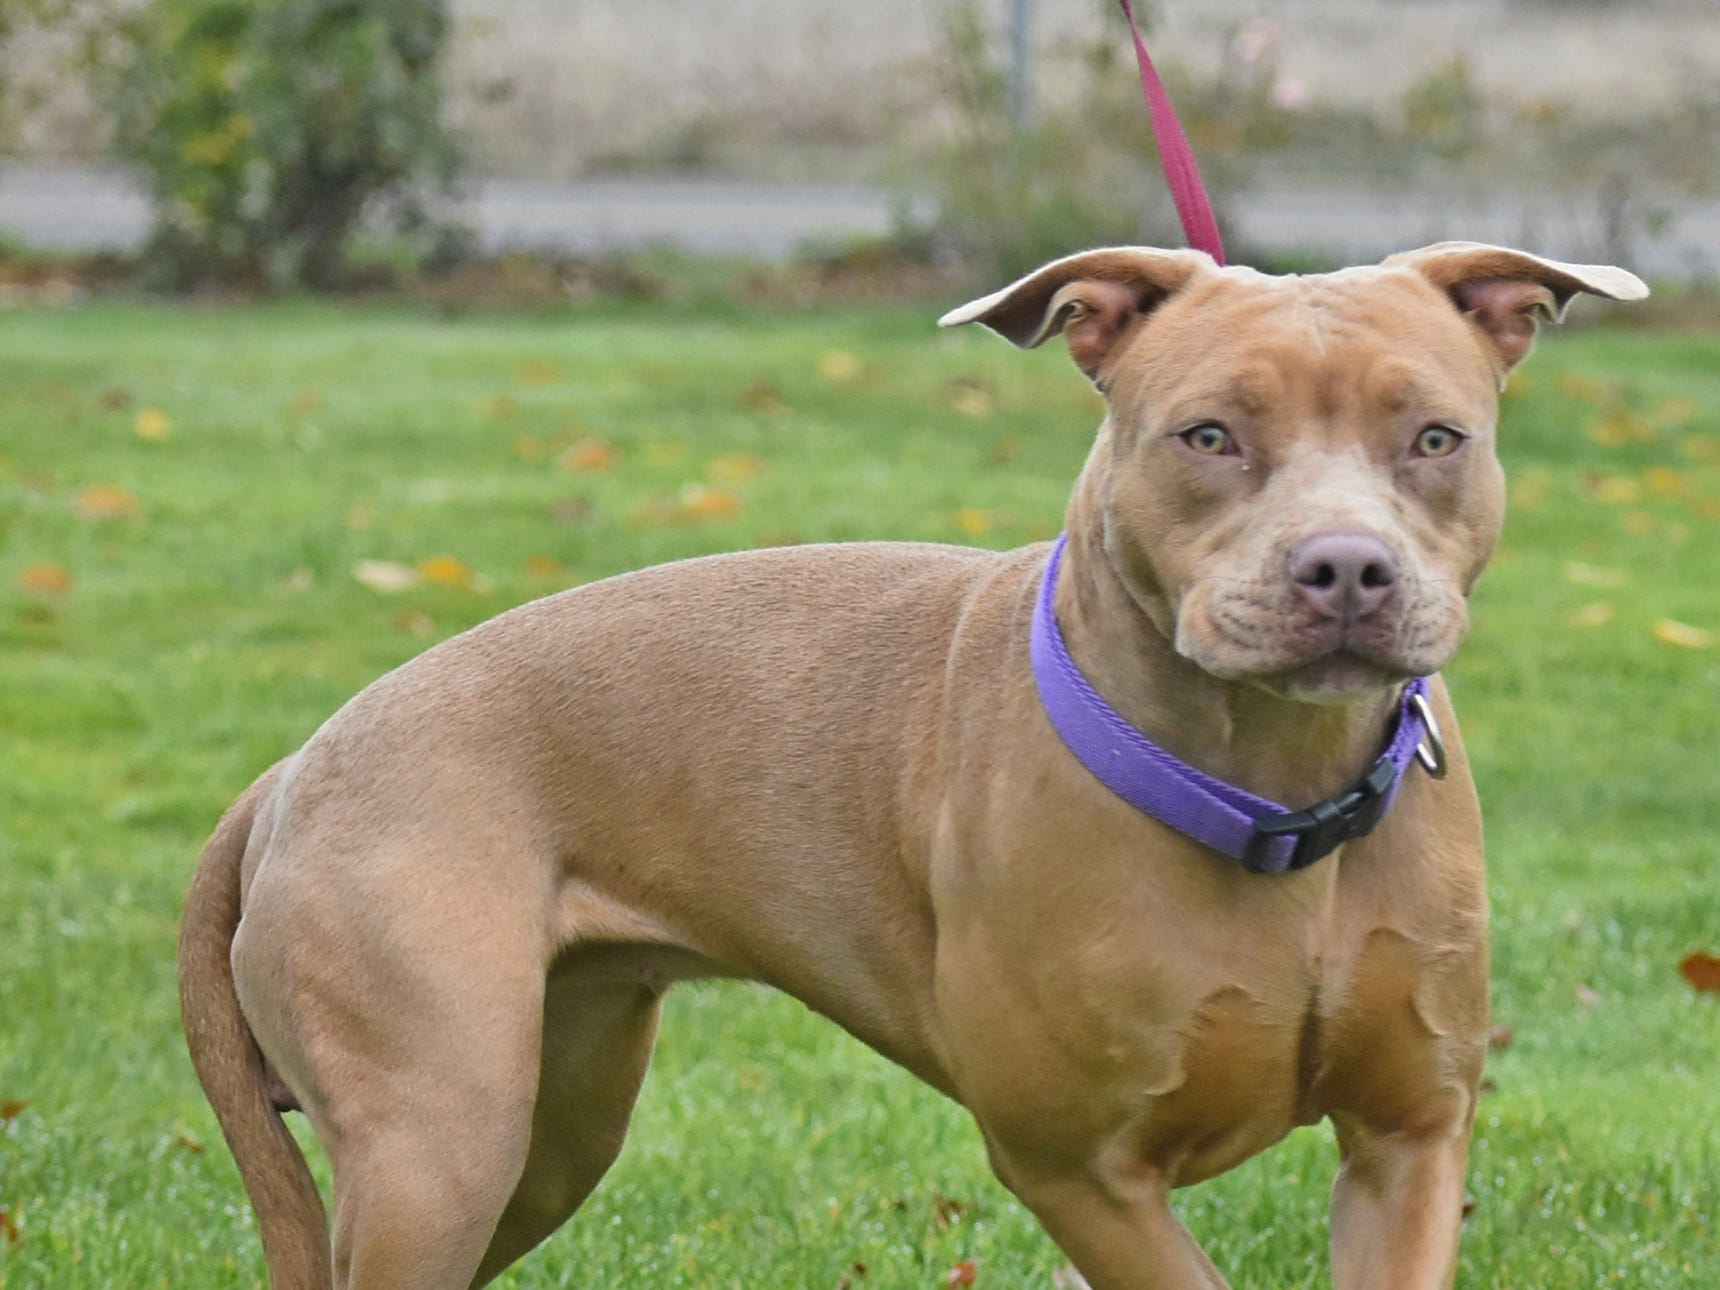 Peaches is a 2-year-old female fawn American pit bull terrier mix. She needs an understanding, loving and patient person who will help her with consistency and positive reinforcement. Peaches is on her way to learning to trust again. For information, contact Marion County Dog Services at 503-588-5366.